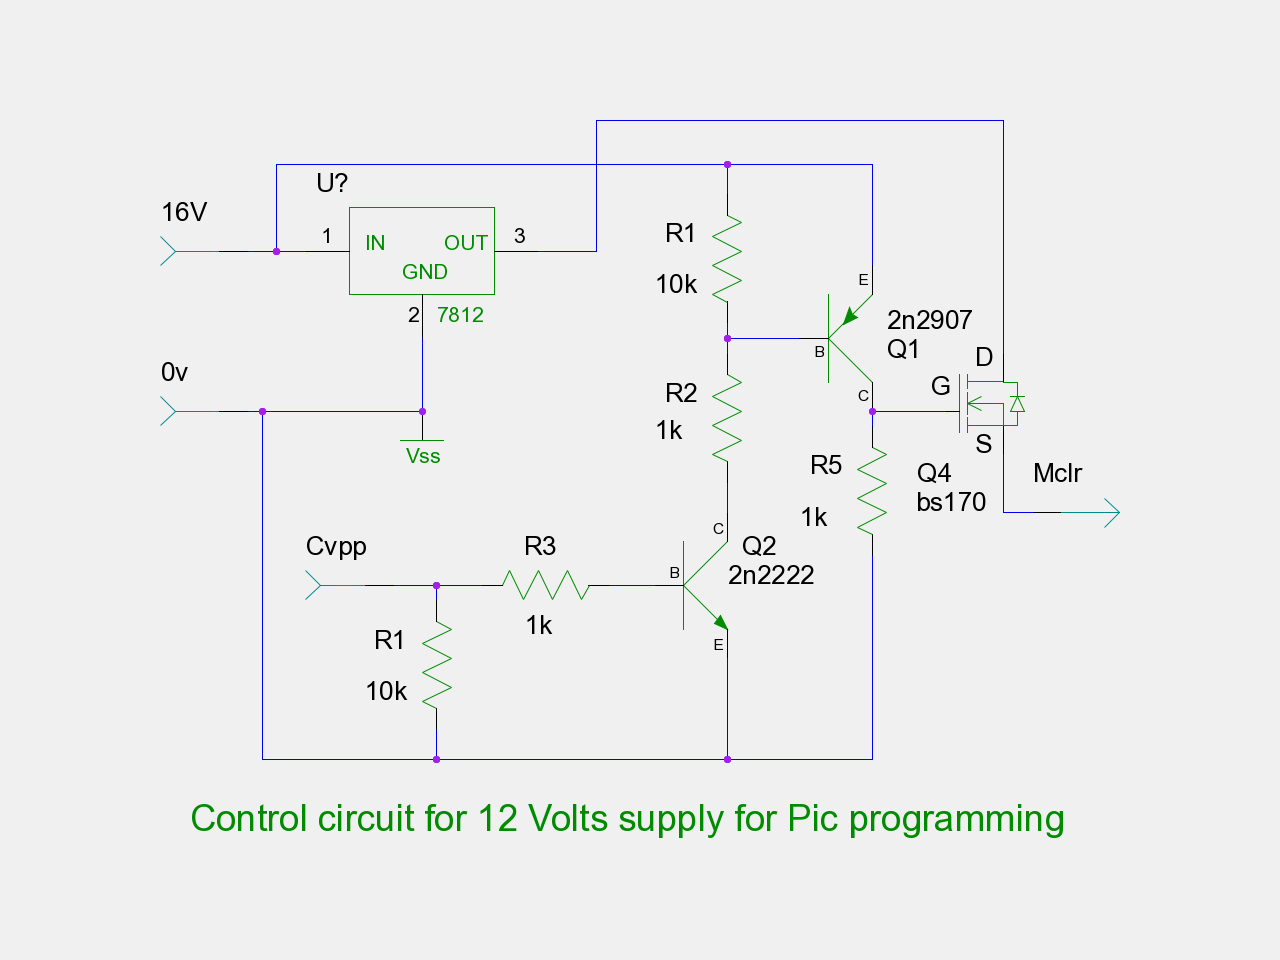 Micro eprom programmer pgrm3 programmer side schematics for 12 volts supply pooptronica Gallery